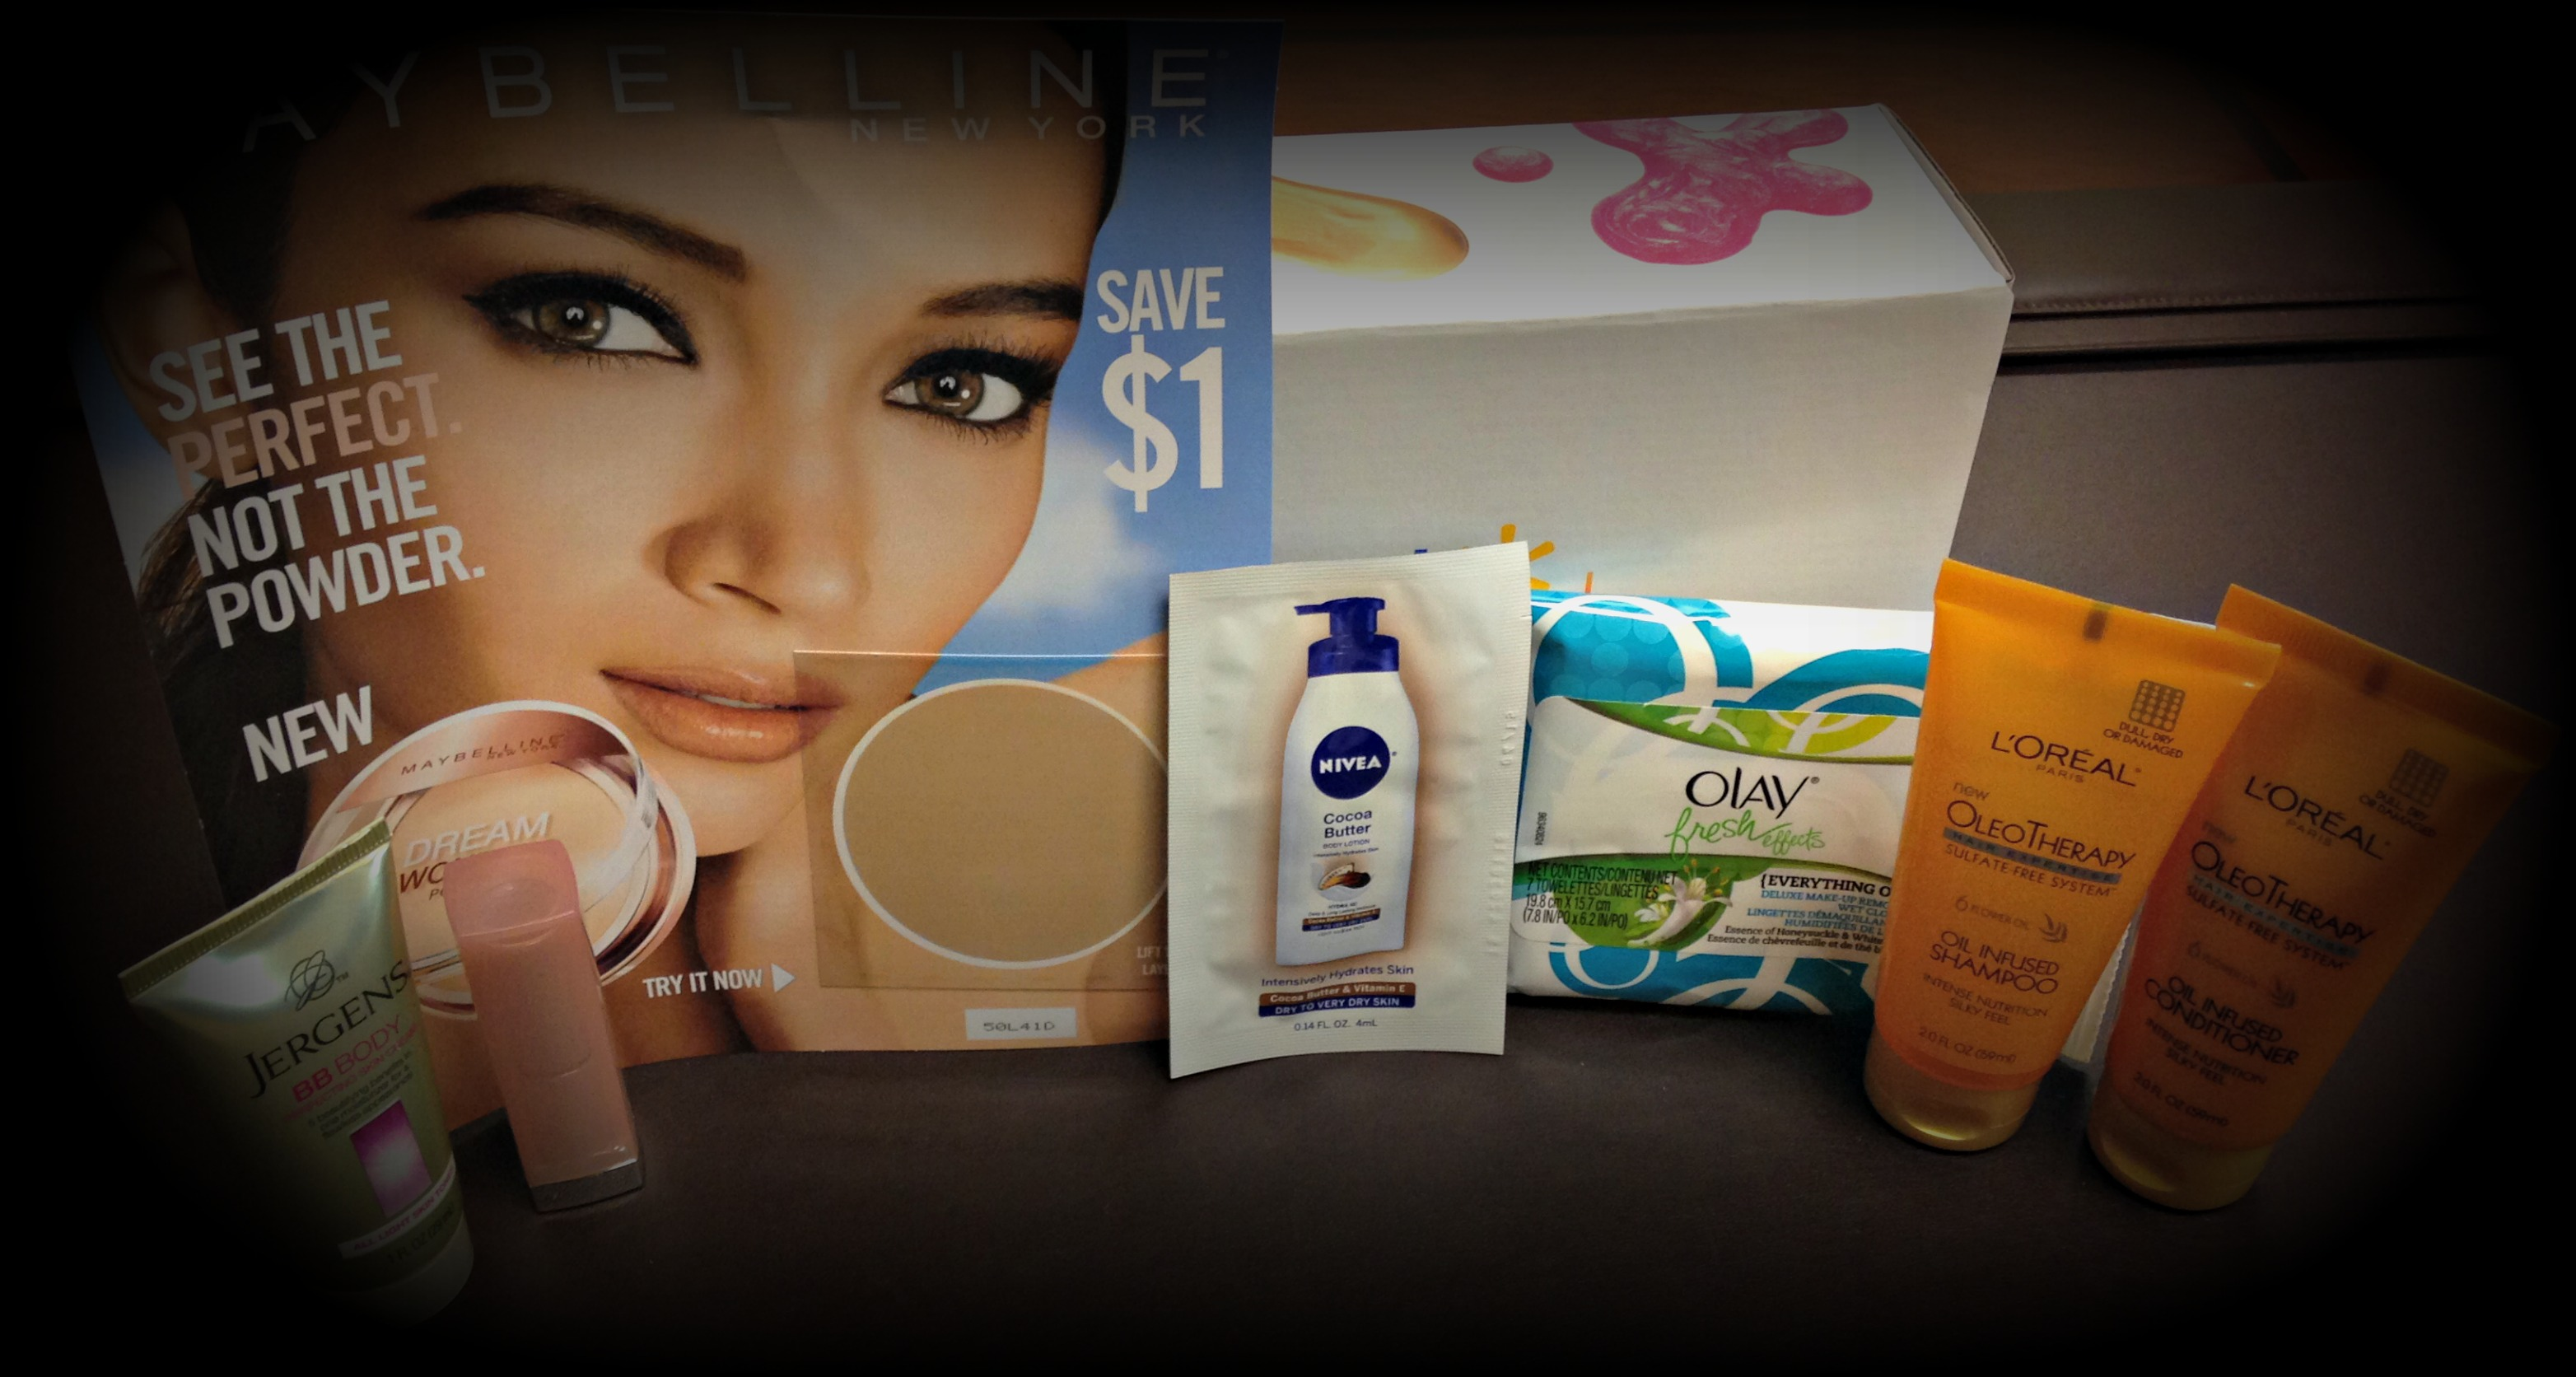 Oil Of Olay Hair Removal Printable Coupon Coupons For Shoe Show Stores